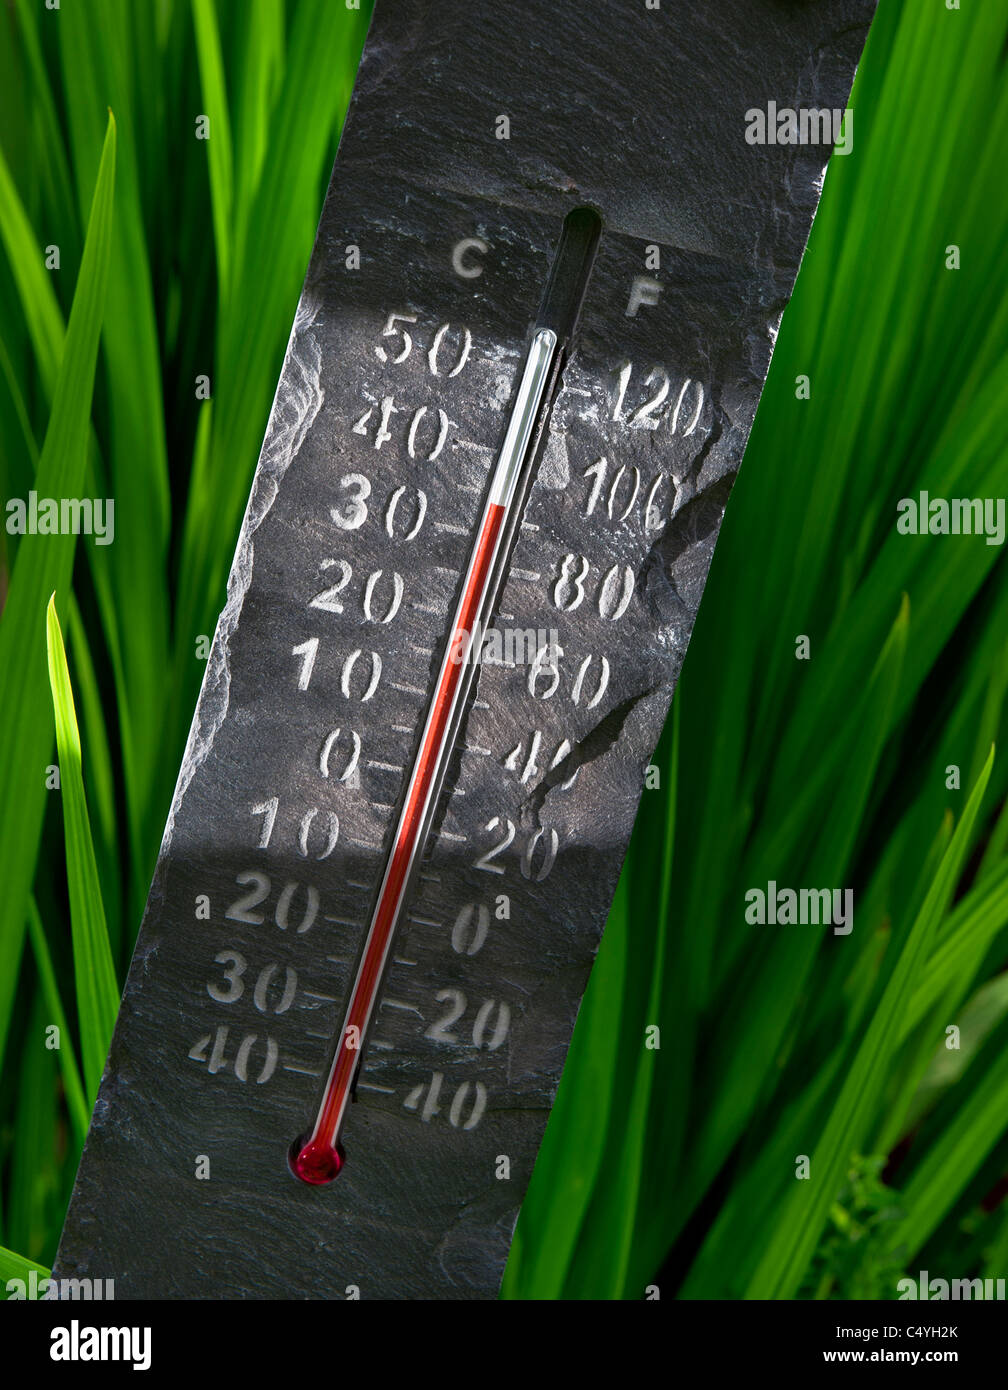 Sunlit stone carved thermometer at 35C 'set in stone' - Stock Image